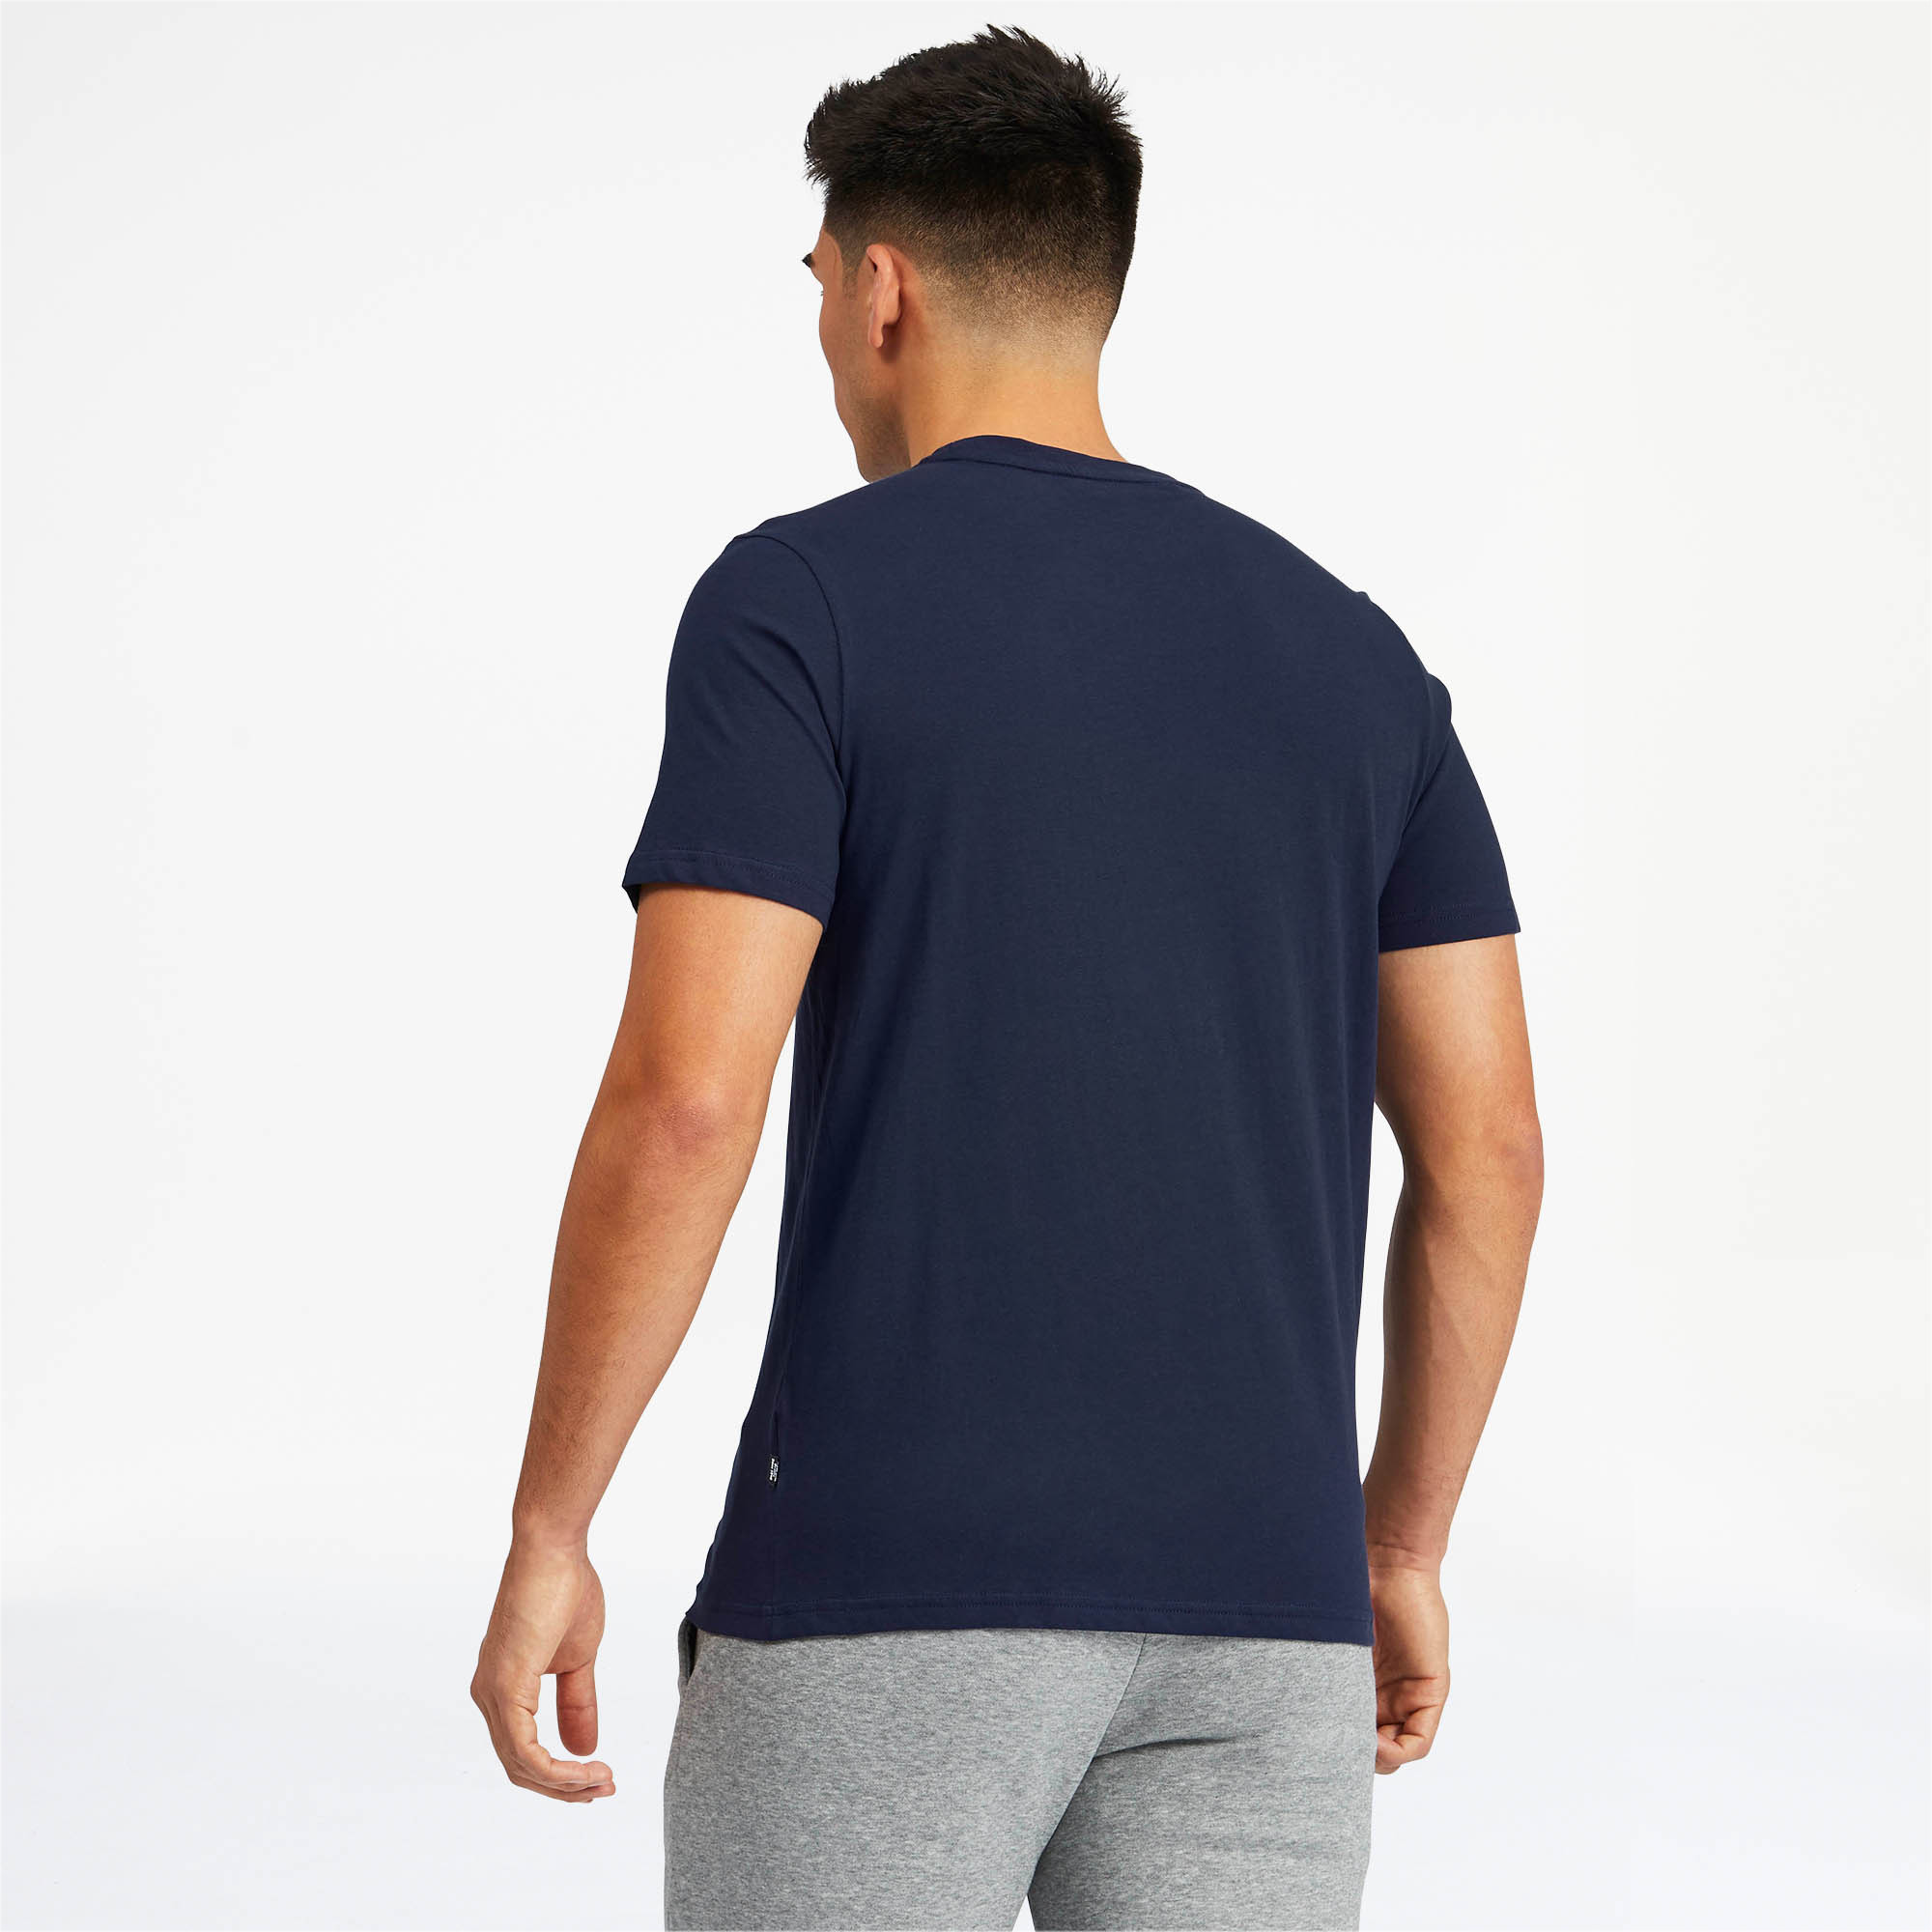 PUMA-Logo-AOP-Pack-Men-039-s-Graphic-Tee-Men-Tee-Basics thumbnail 20